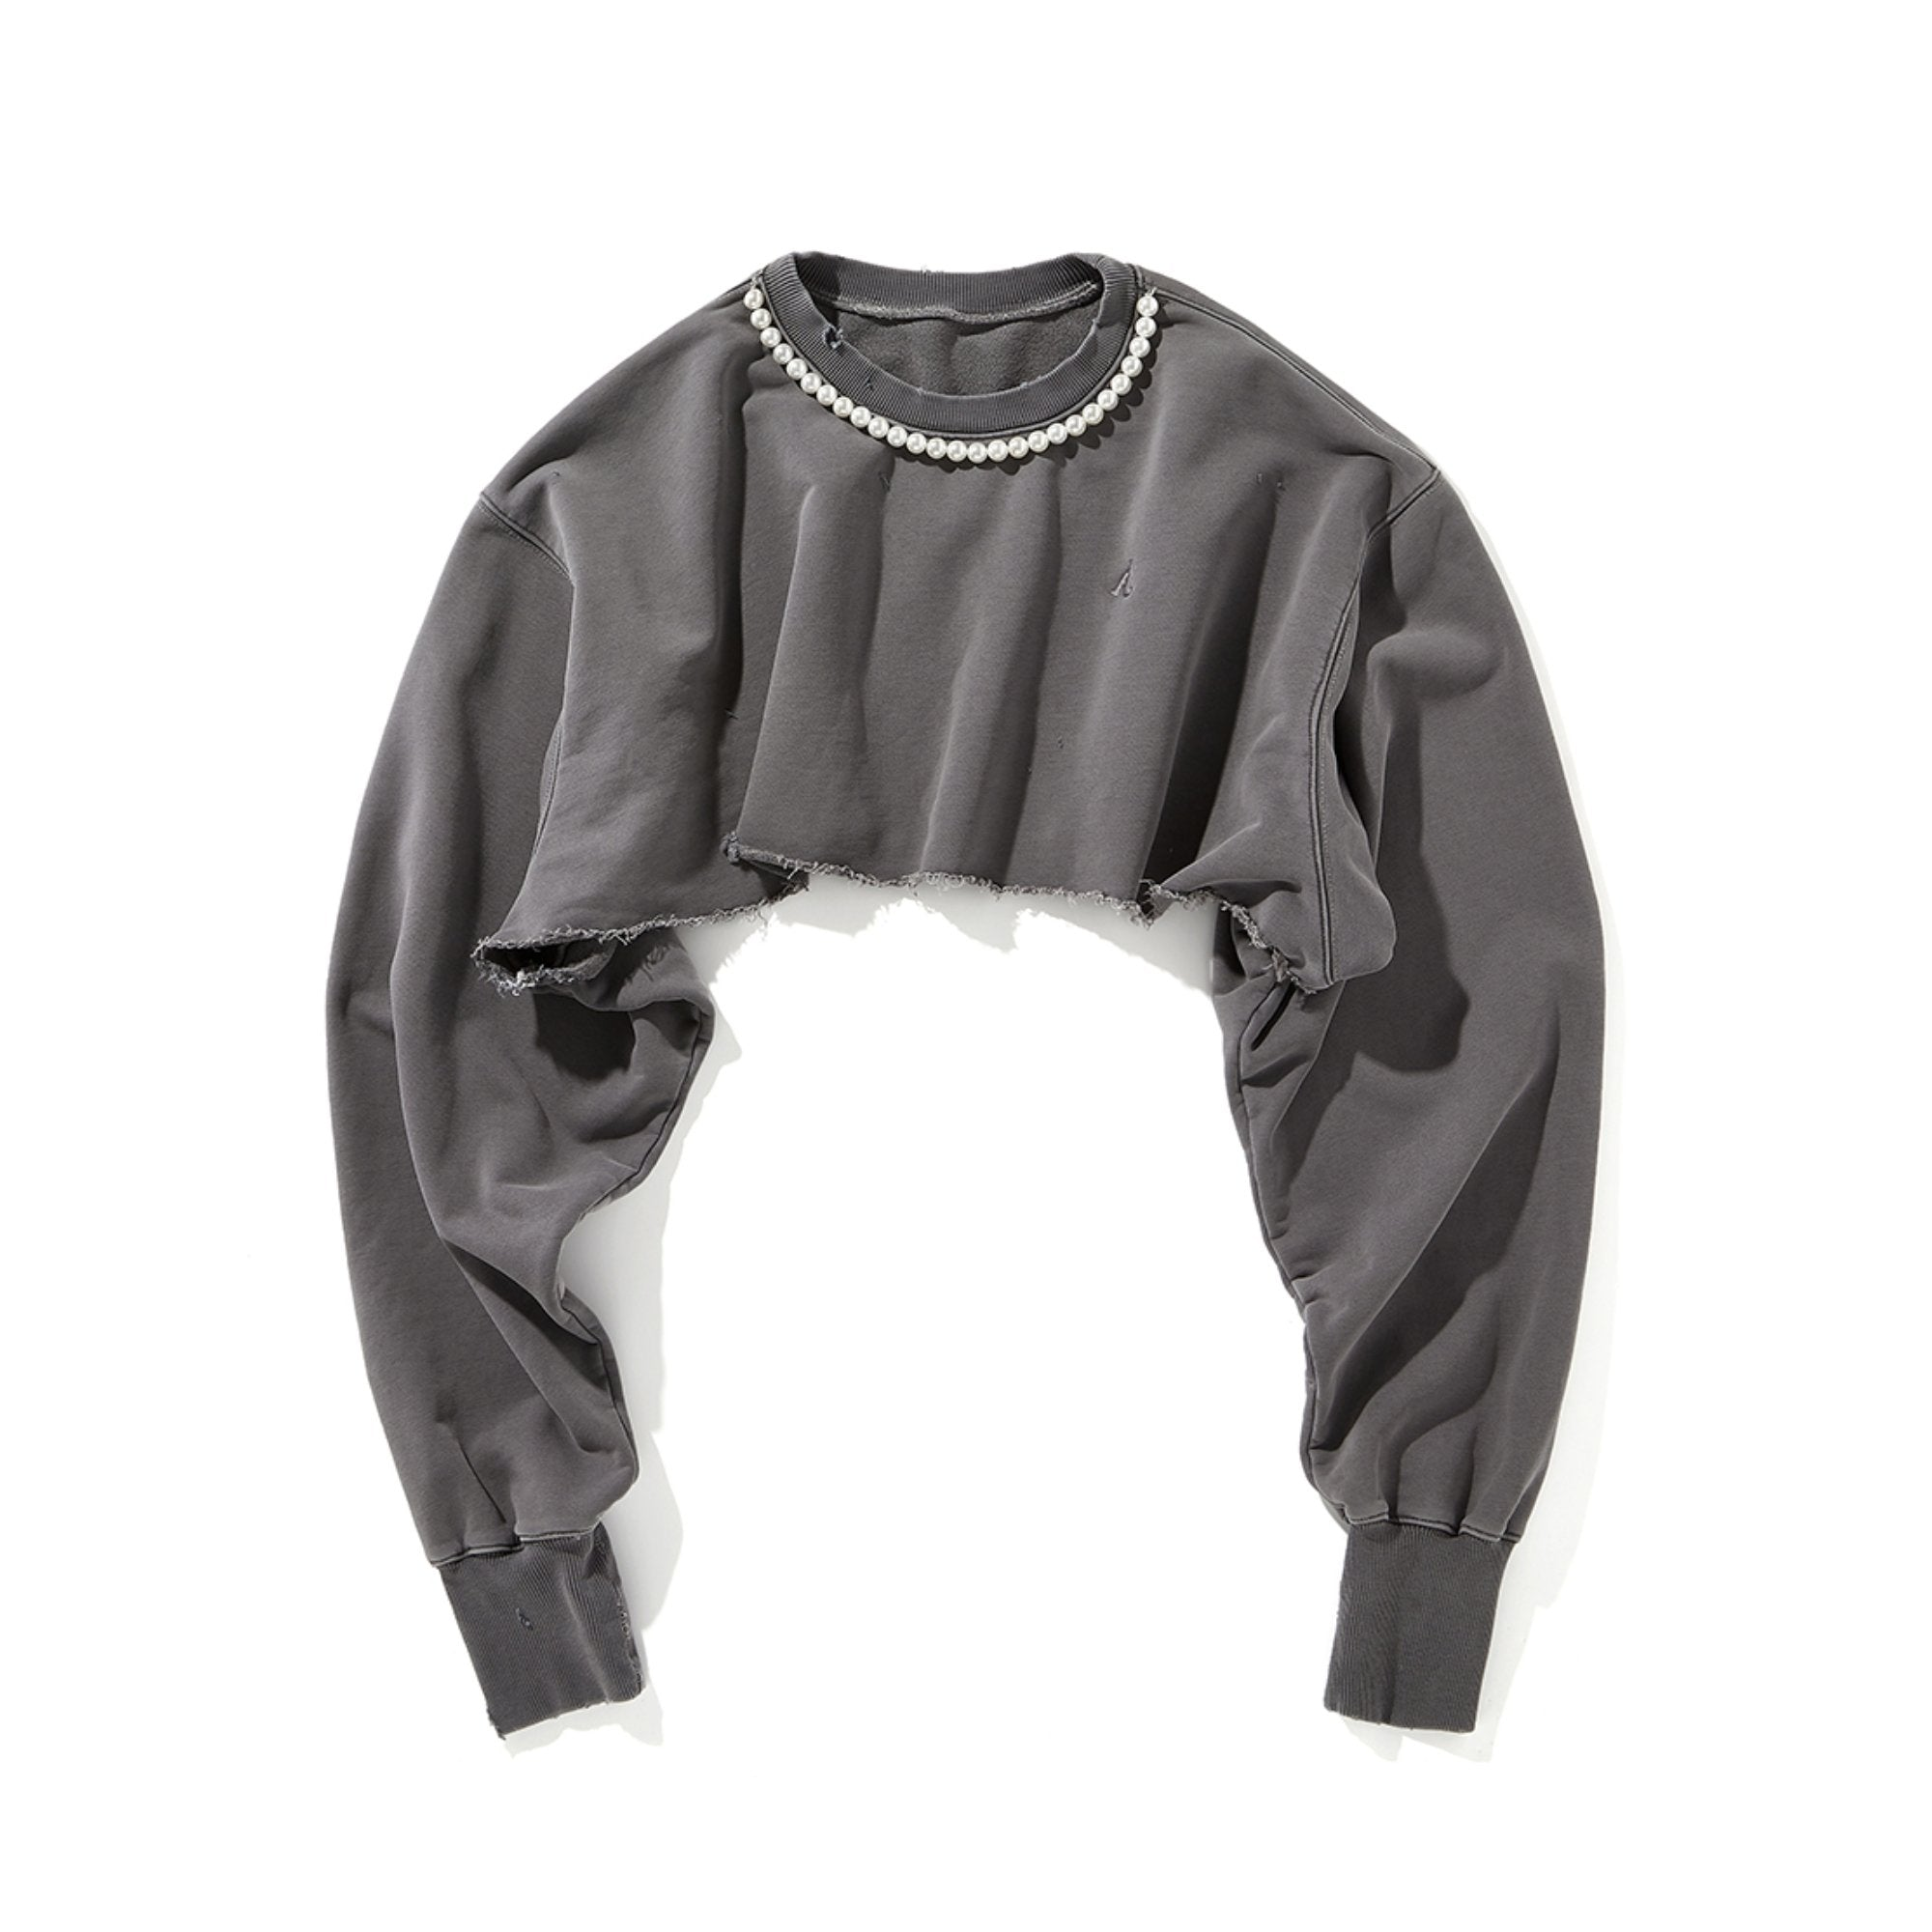 AIN'T SHY Pearl Necklace Crewneck Cold Ash | MADA IN CHINA